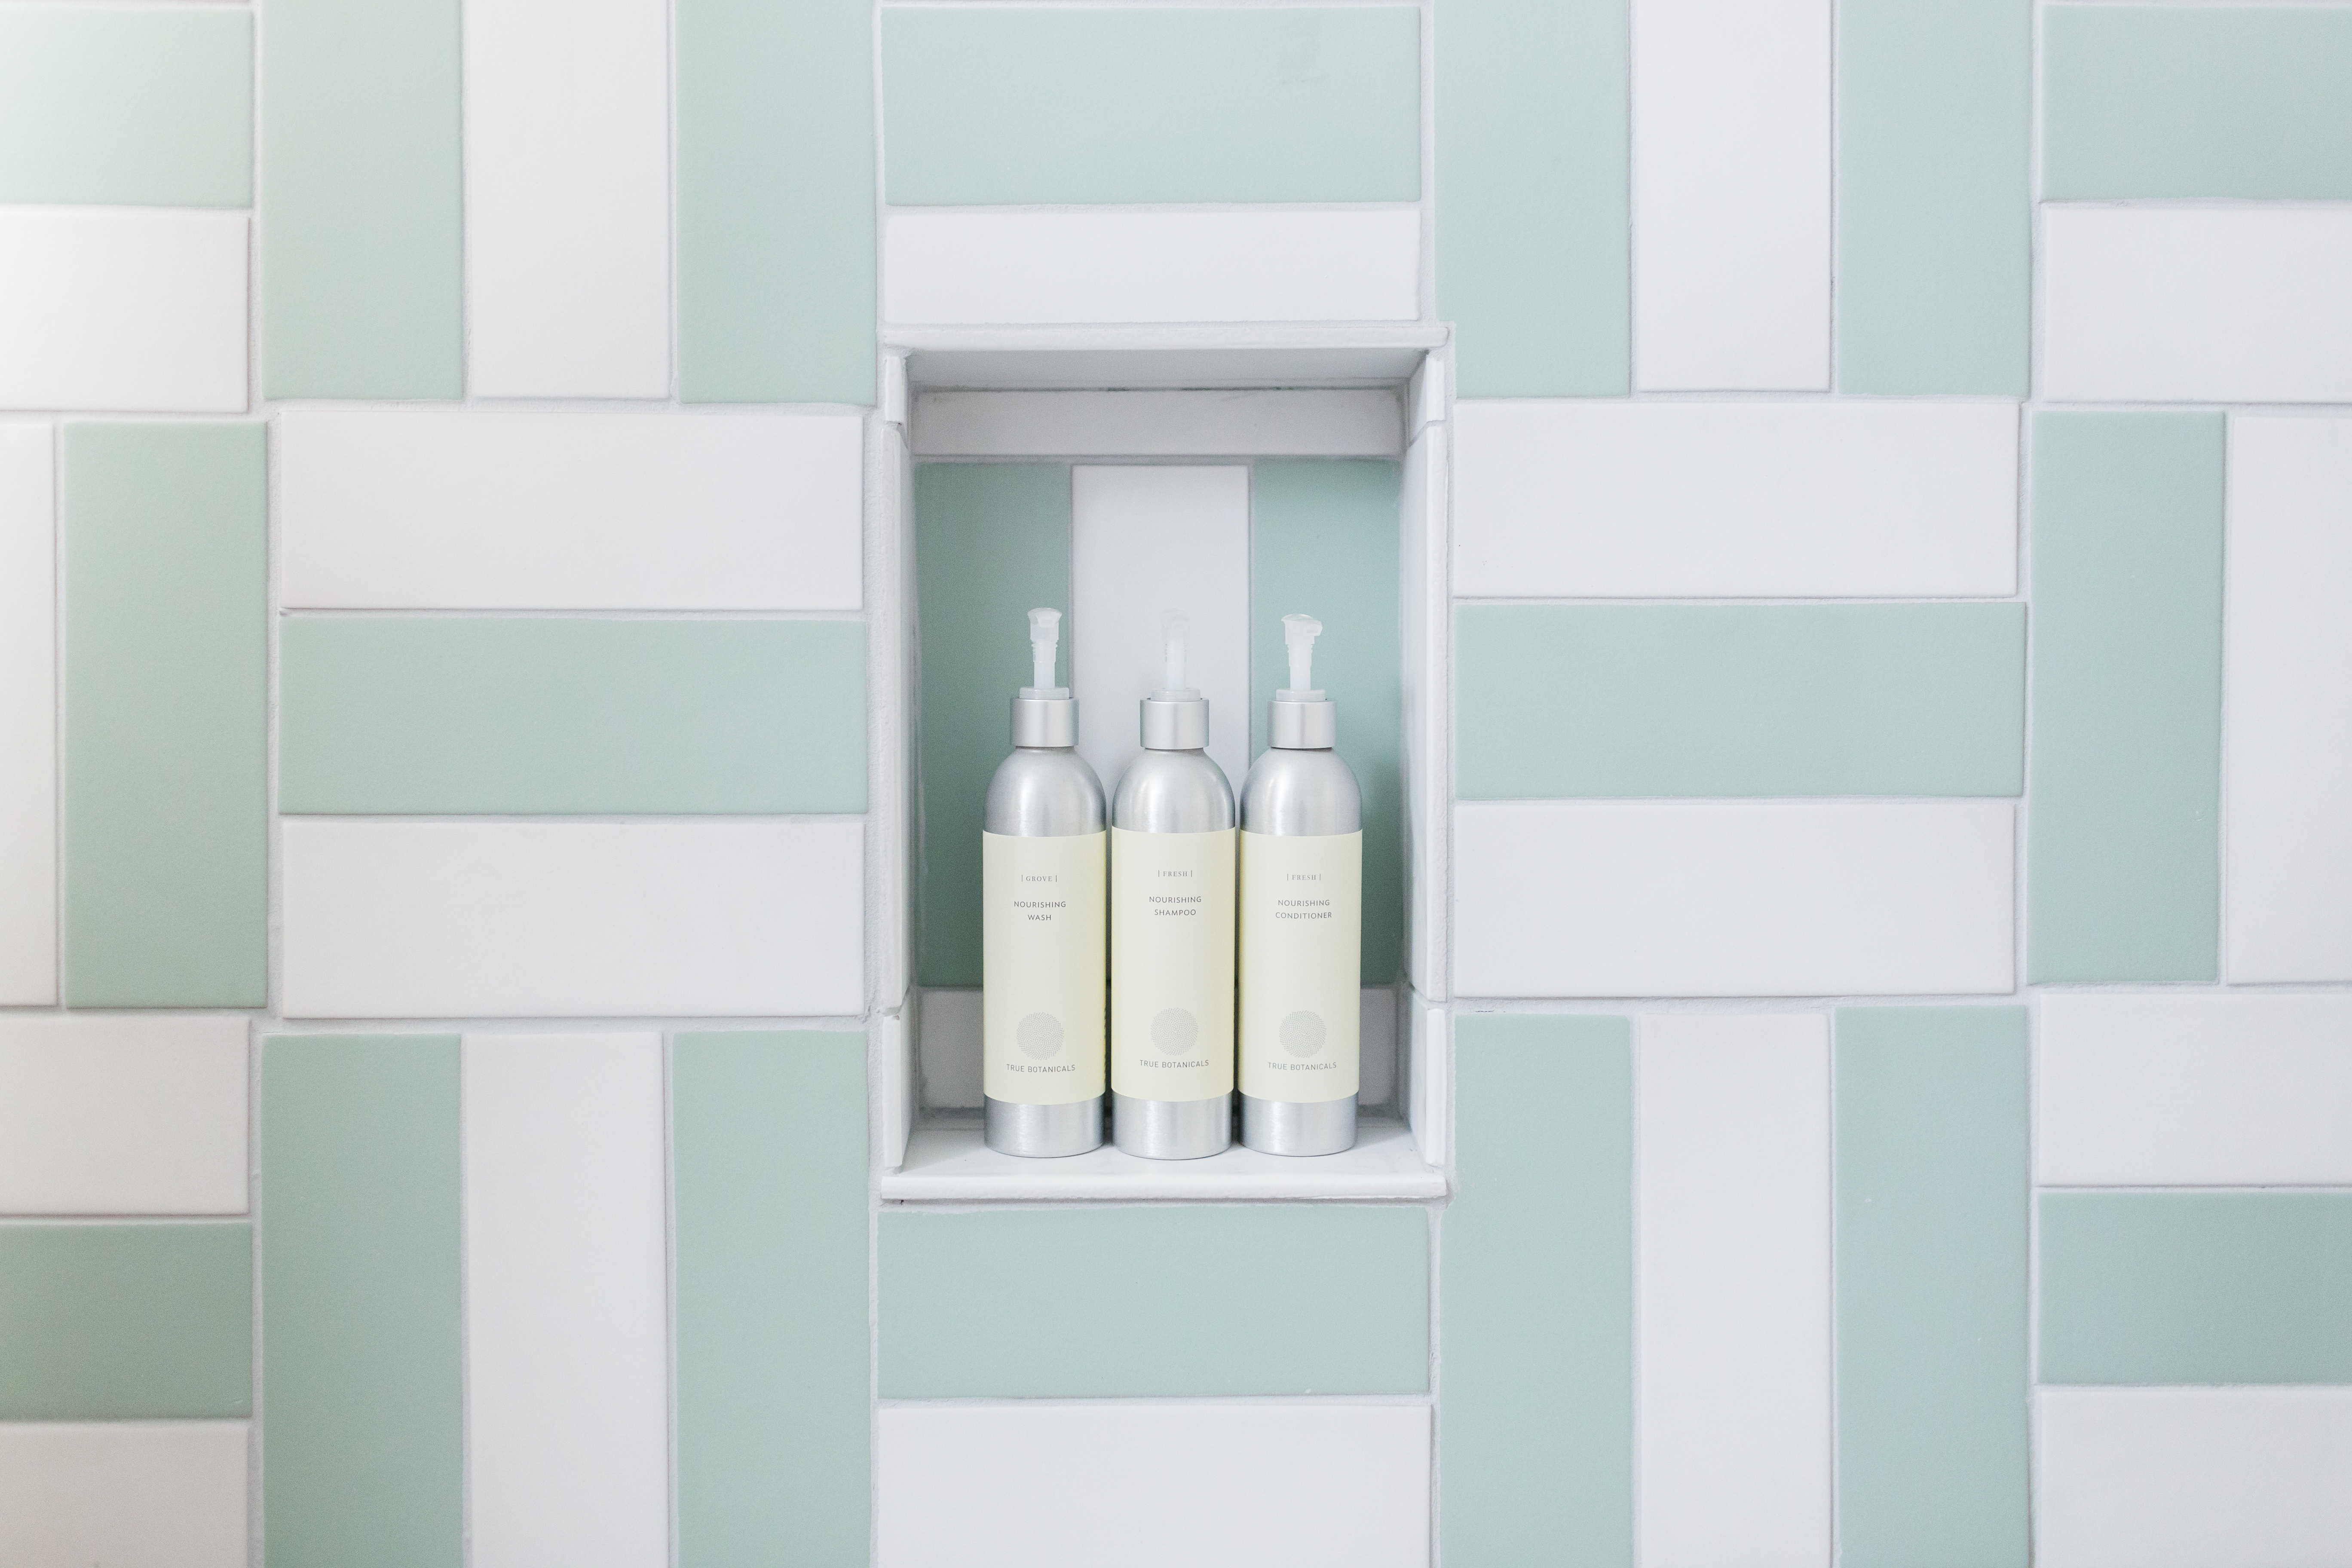 2018_Q3_image_residential_influencer_Kitchy-Kitchen_Claire_Thomas_bathroom_wall_floor_tile_parquet_straight_set_daisy_sea_glass_3x9_guest_bath_niche_detail.jpg?mtime=20181030162843#asset:423796